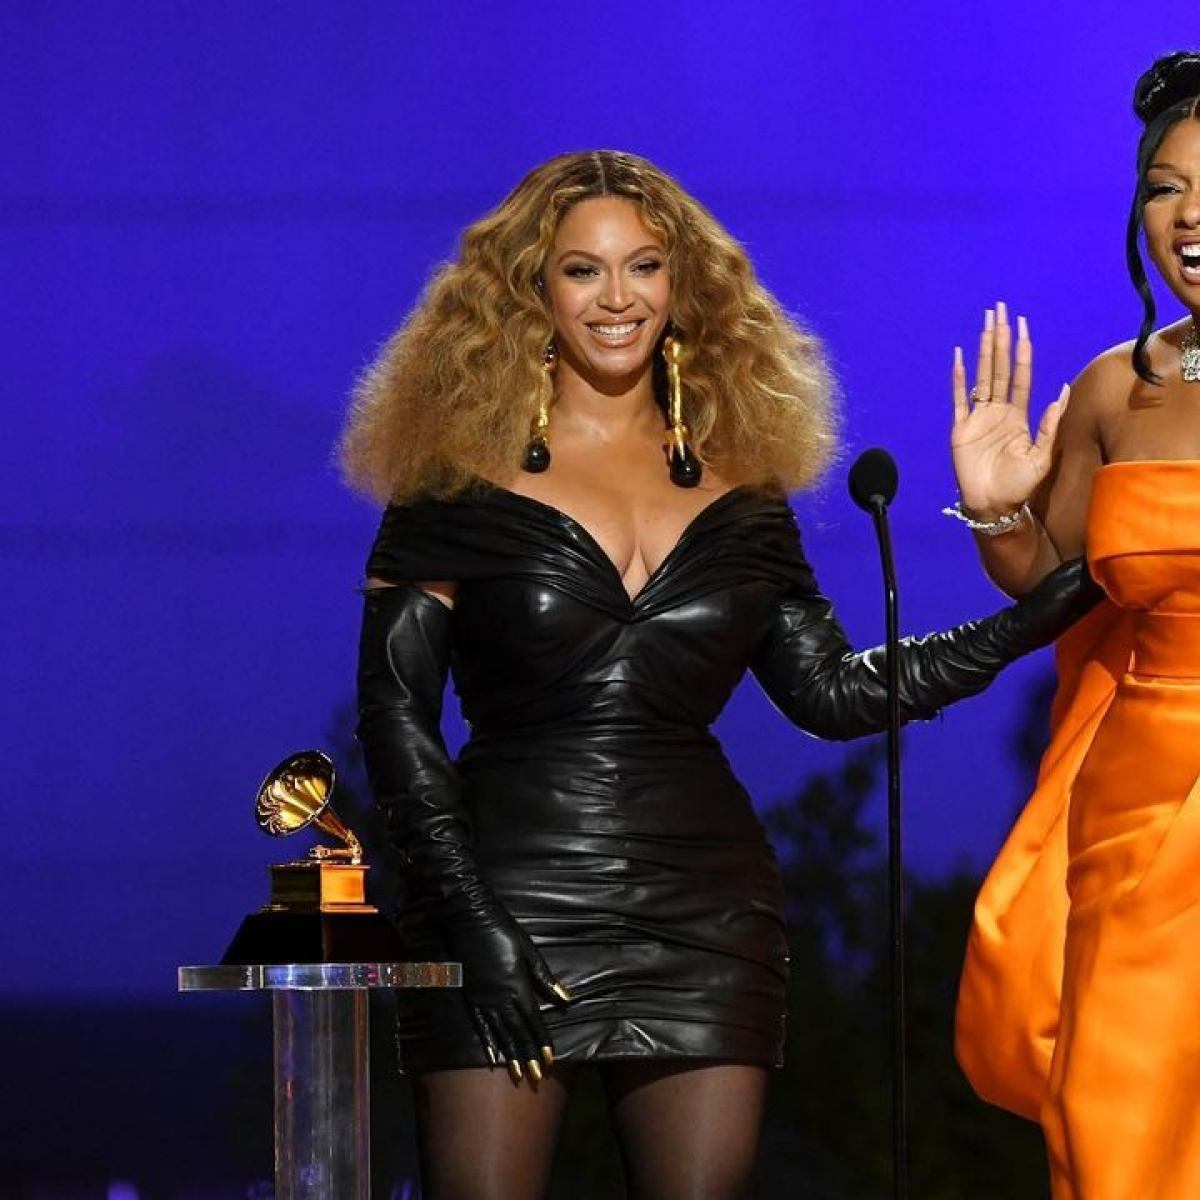 Grammy Awards 2021: From Beyonce to Billie Eilish - complete list of winners